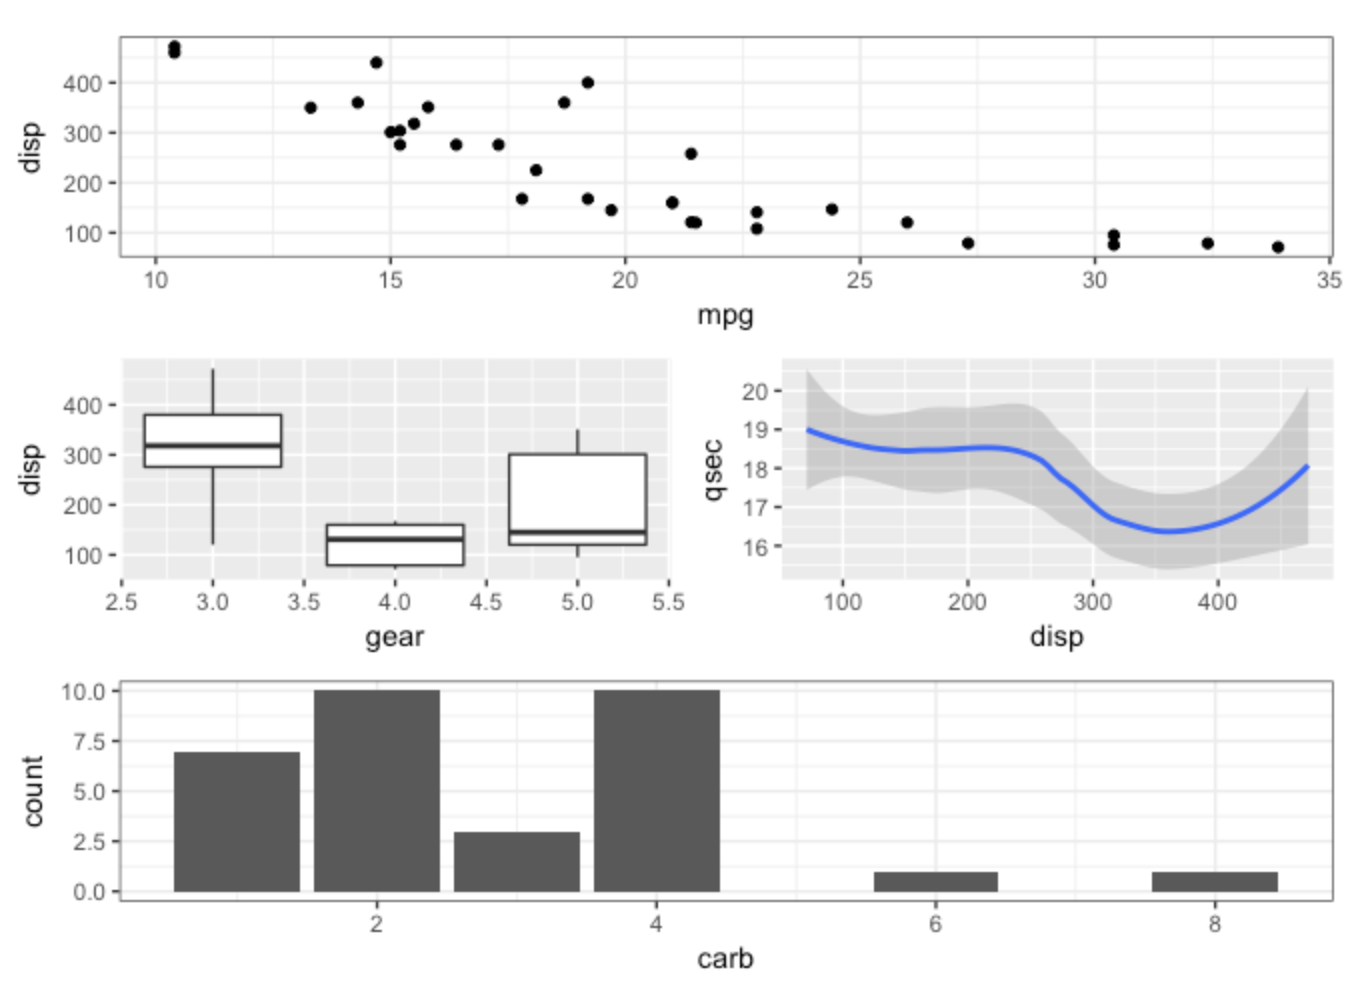 12 Extensions to ggplot2 for More Powerful R Visualizations